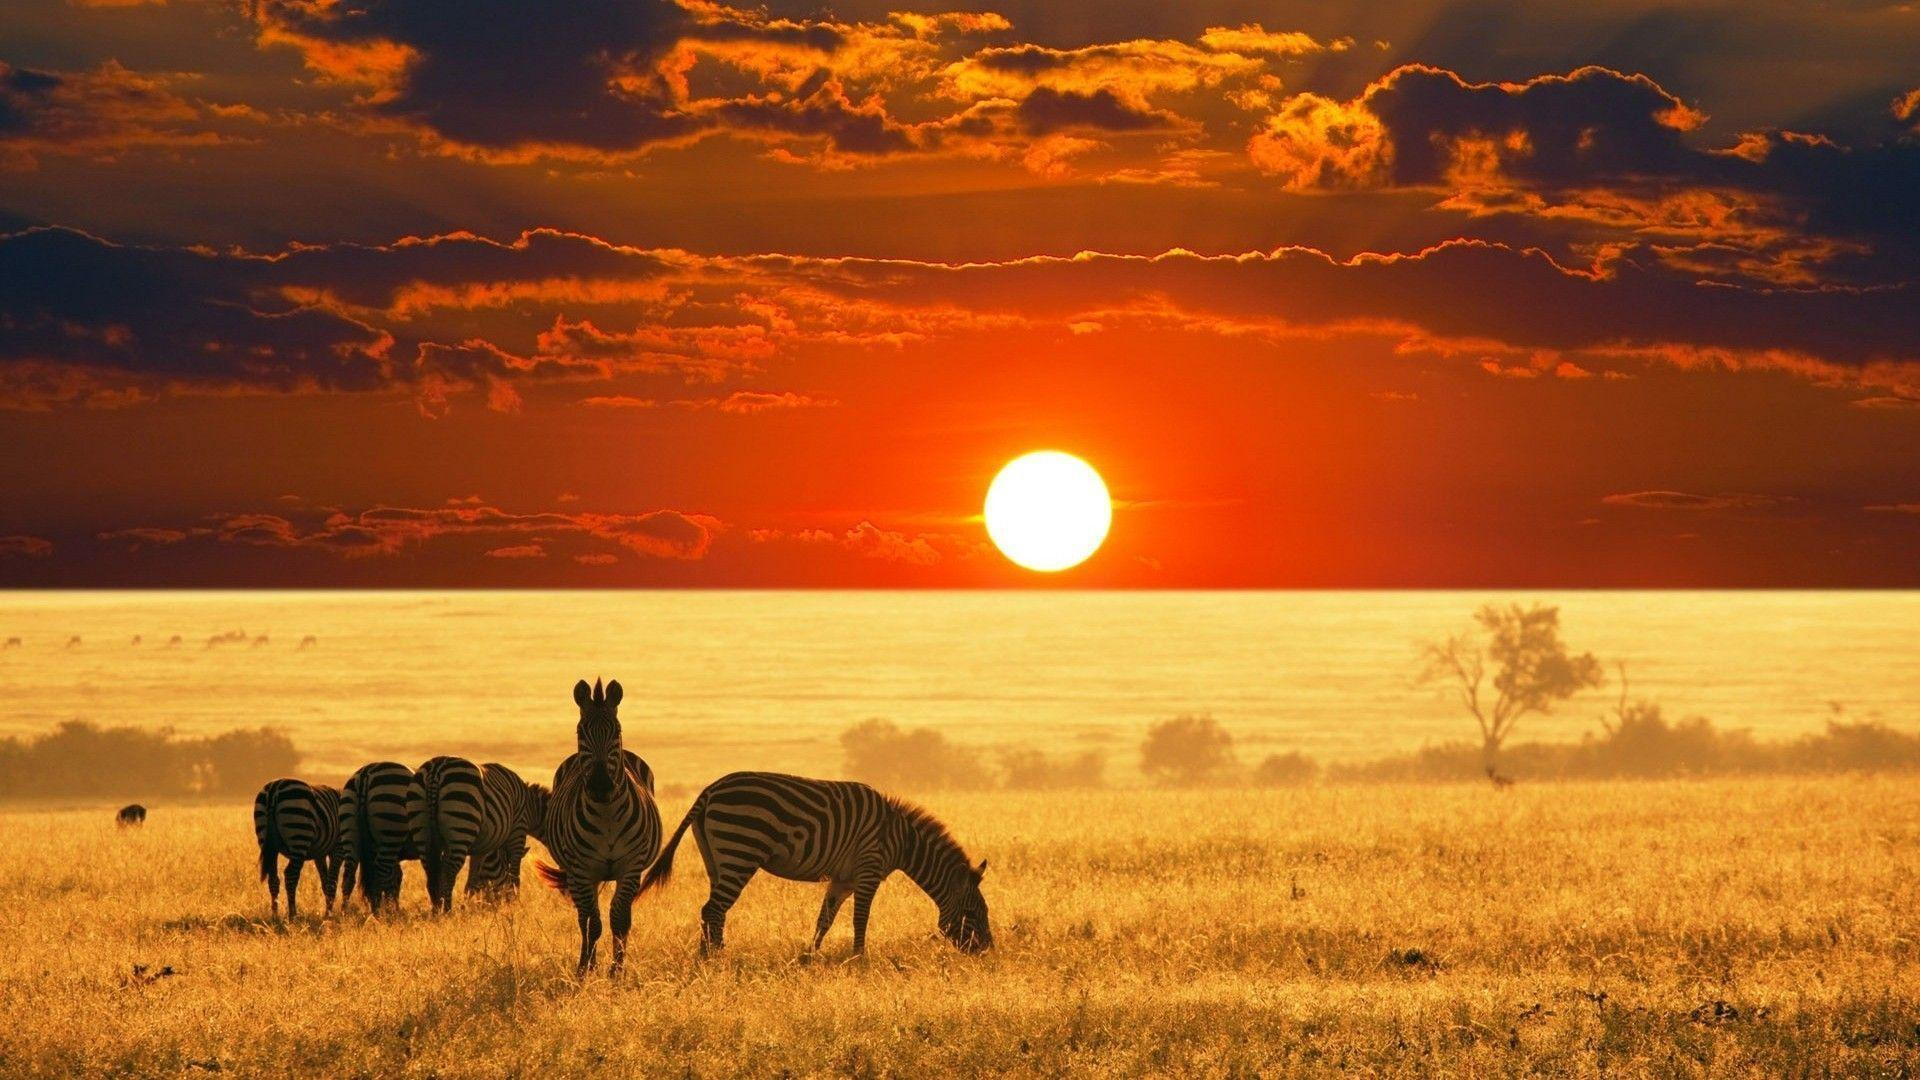 Wild Animals Safari Background Wallpaper - Animal Powericare.